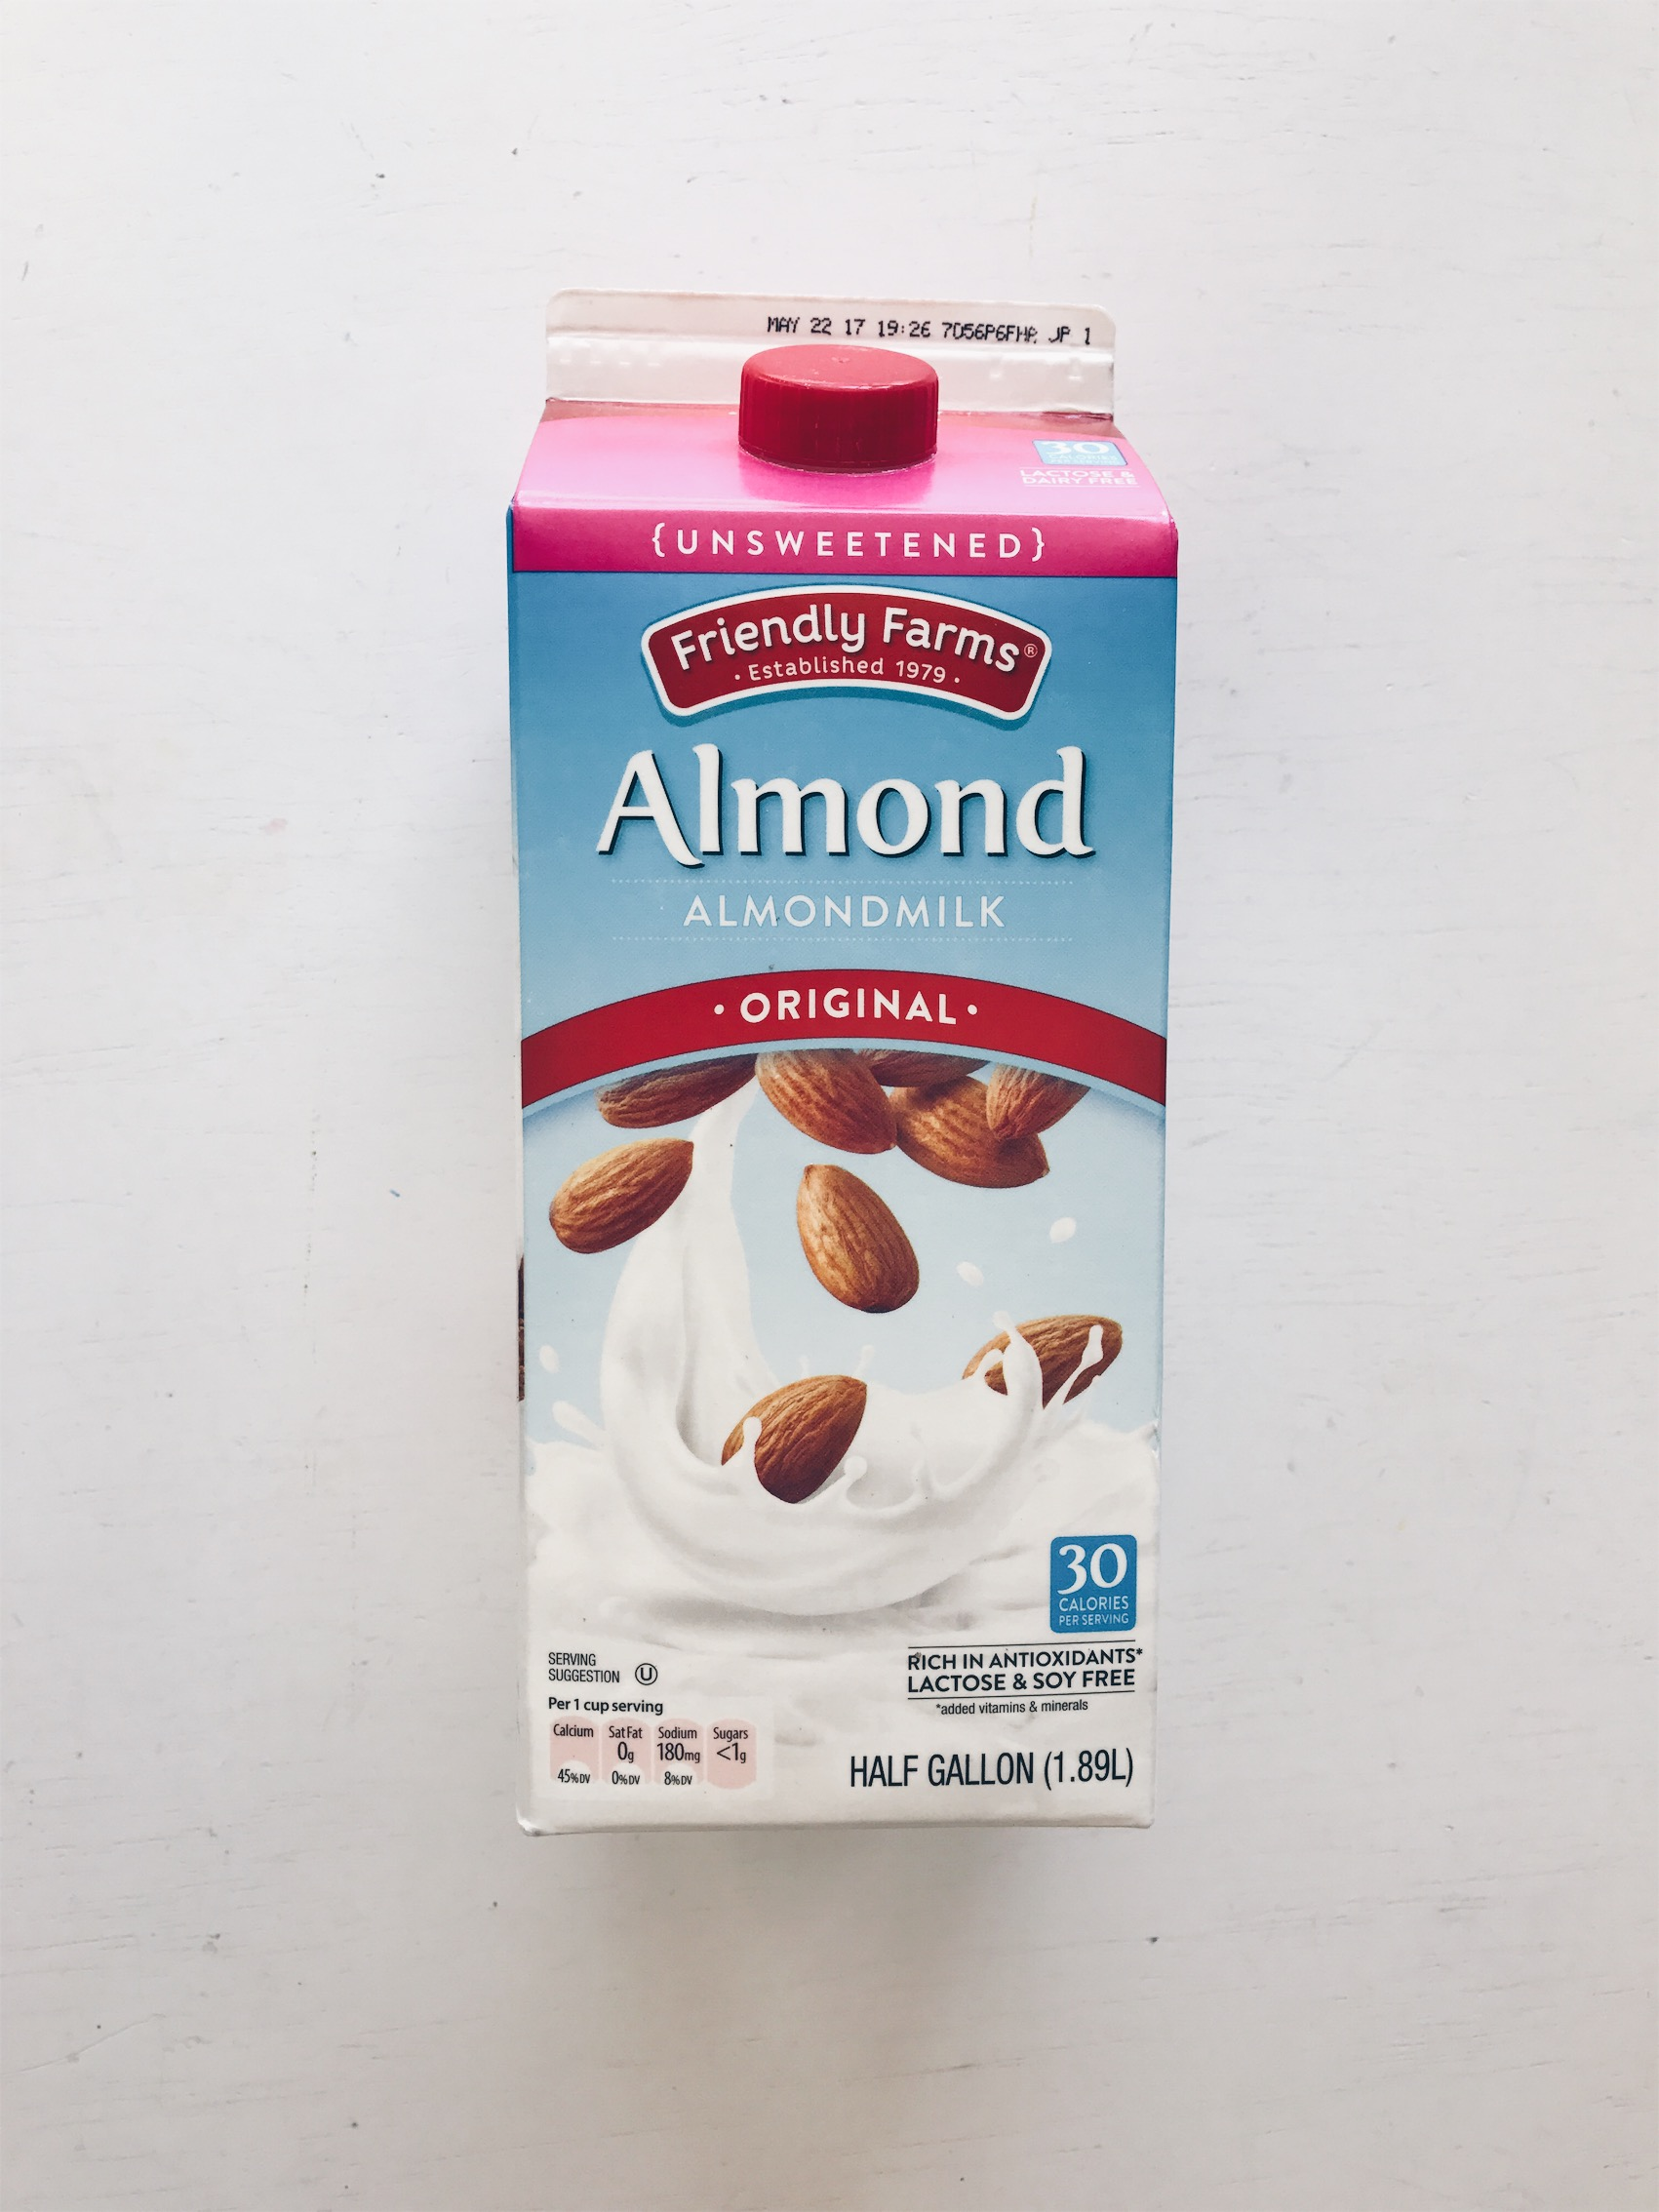 I absolutely love making my own almond milk, but sometimes you don't have time to soak the nuts for a recipe you want to make. I know I am crossing the line a little but on a pinch I will purchase this for recipe needs.